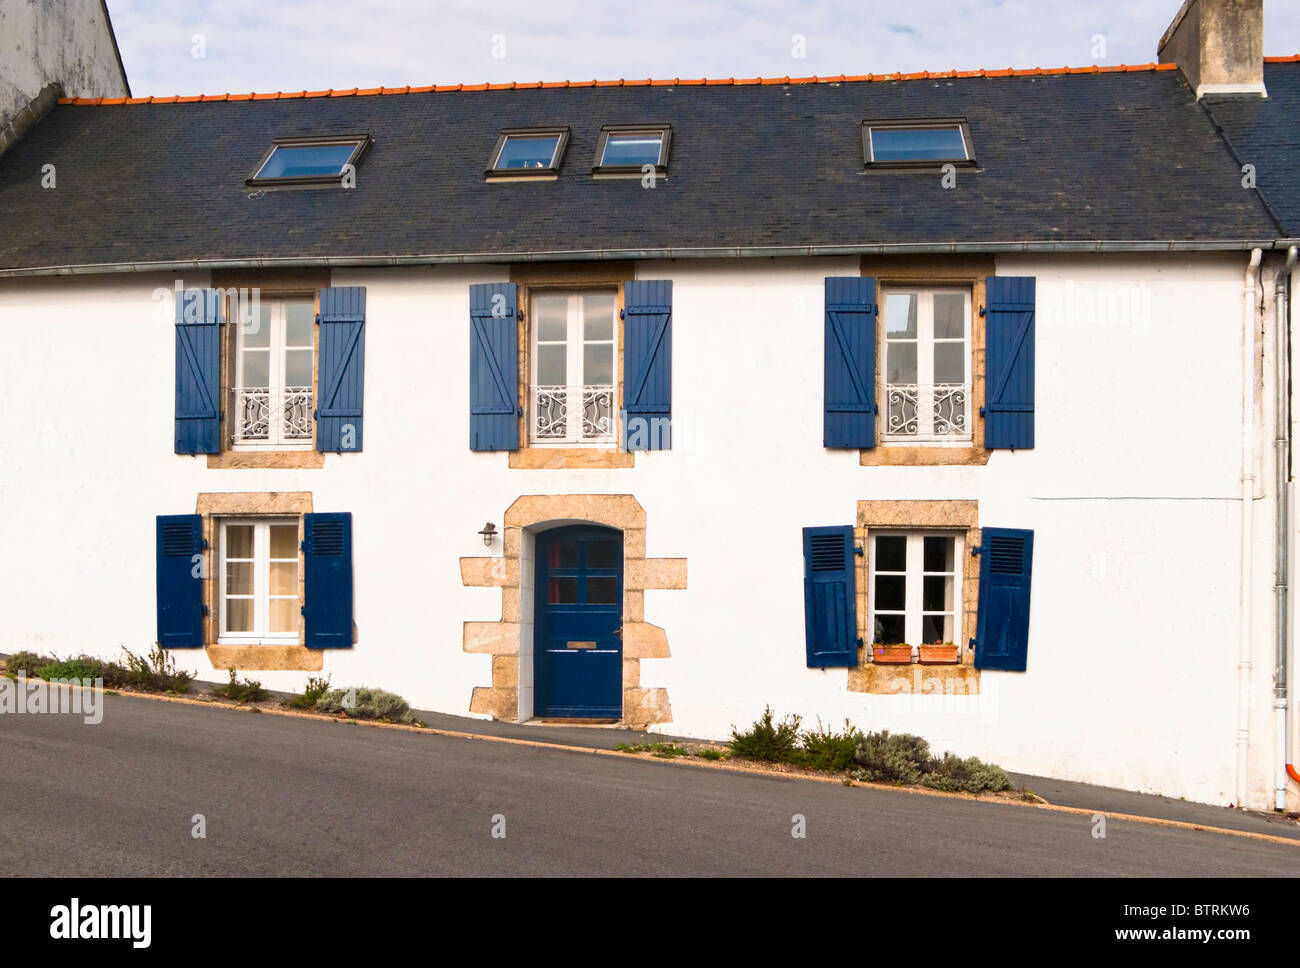 Typical French house with shutters on a hill in Doelan, Finistere, Brittany, France, Europe - Stock Image